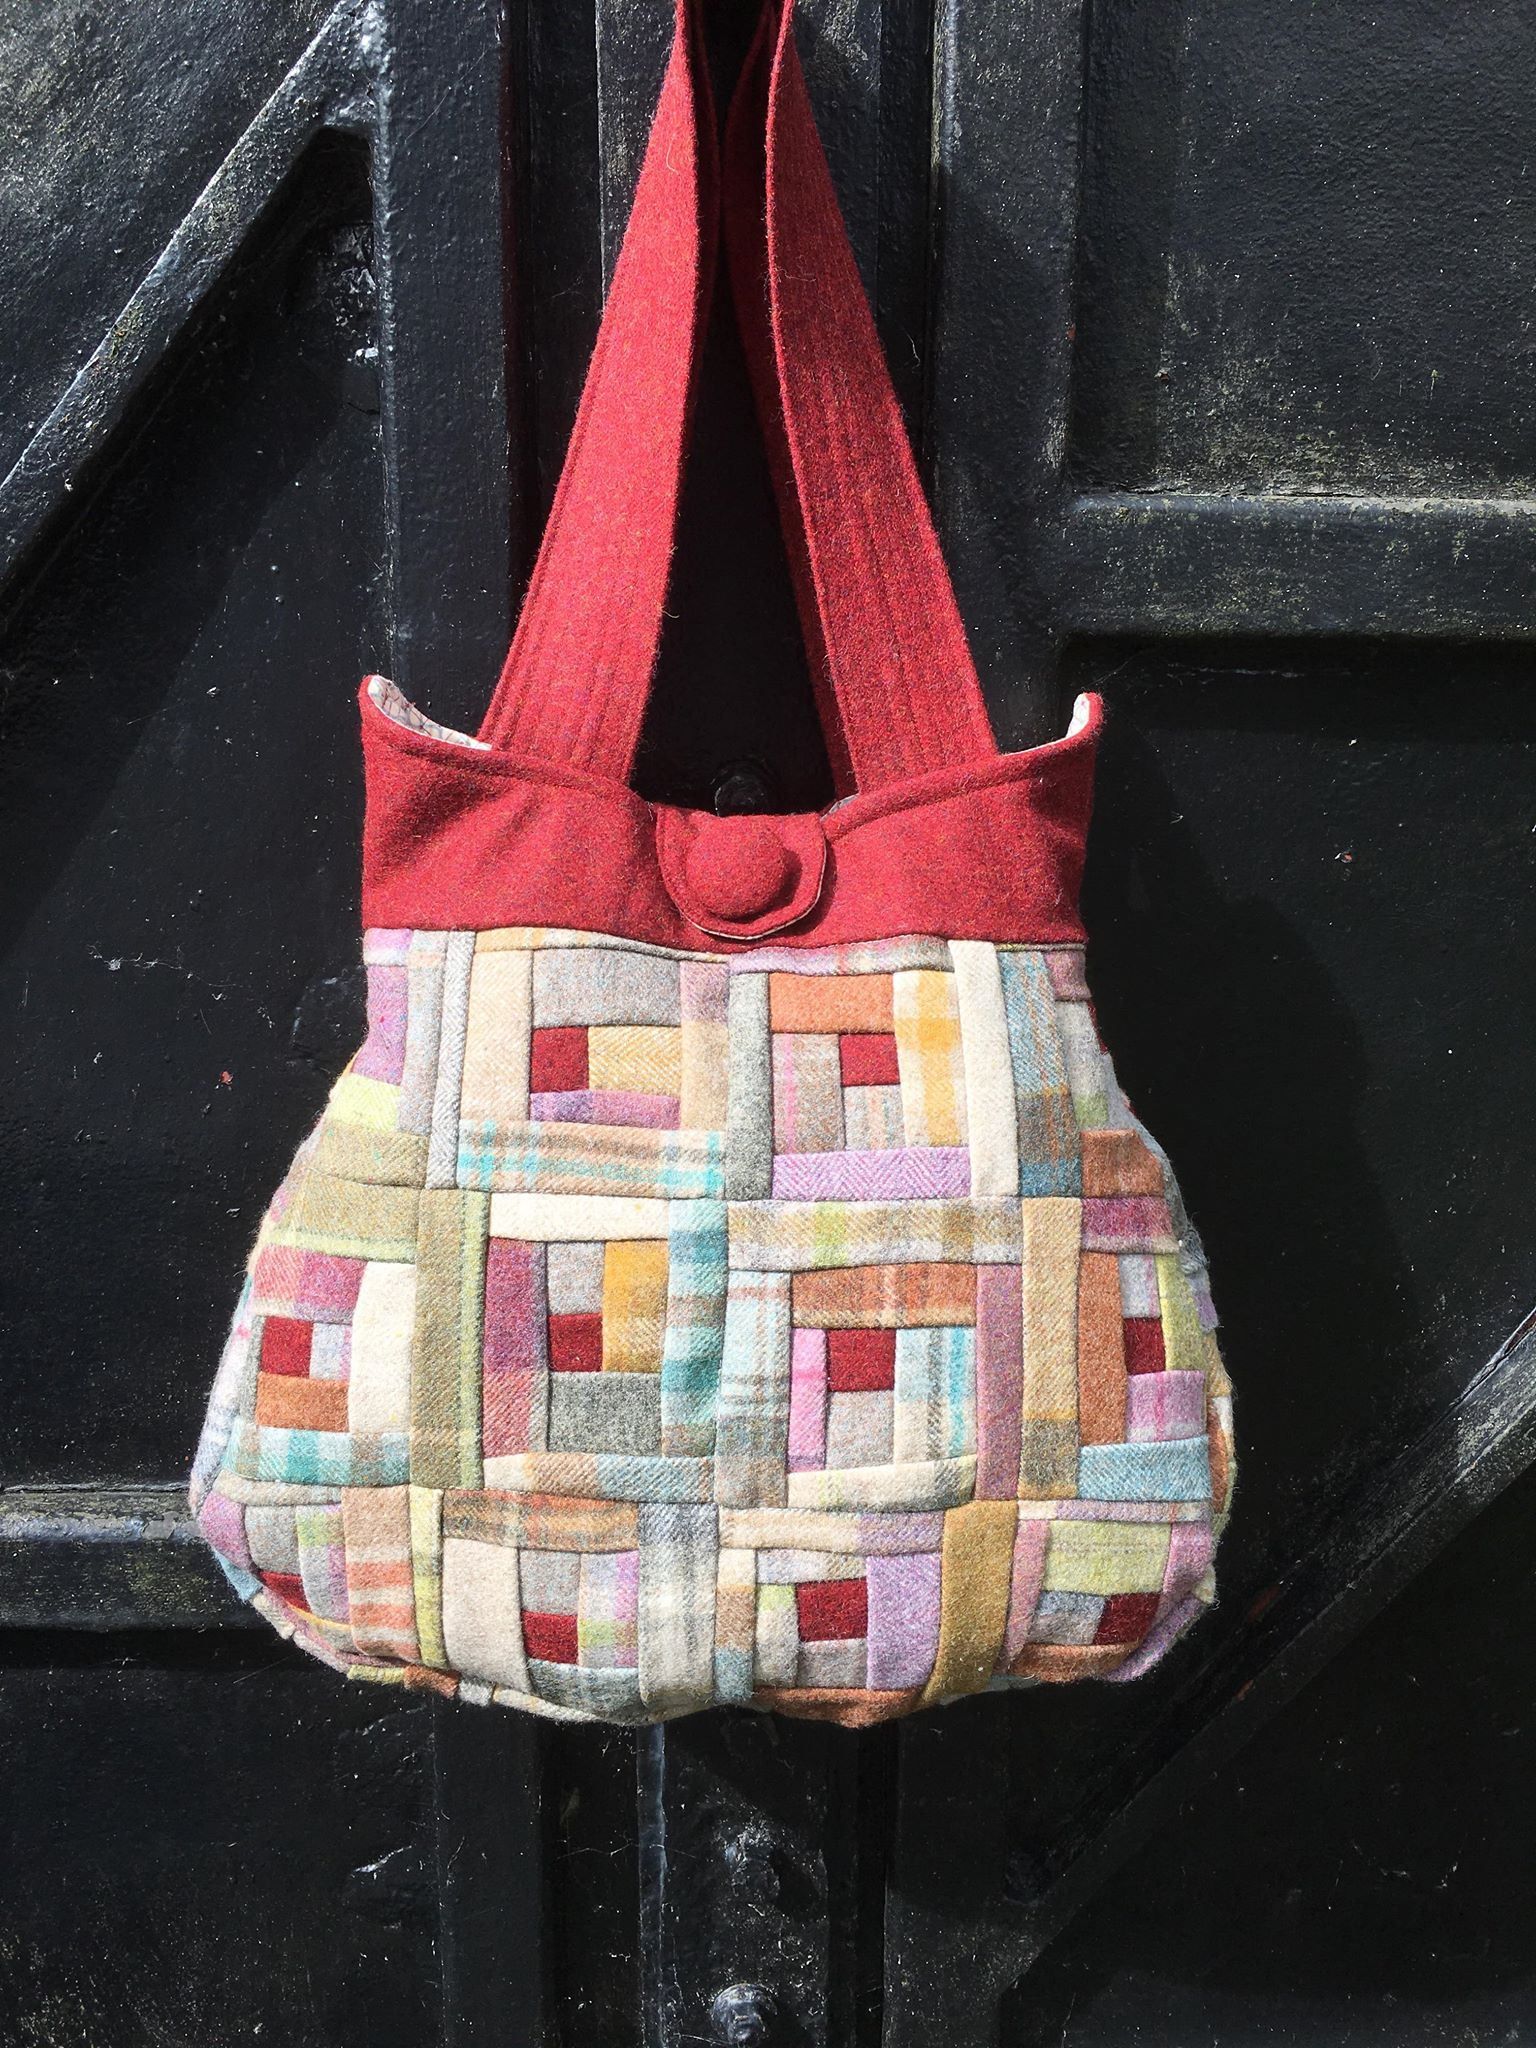 Abby's bag pattern